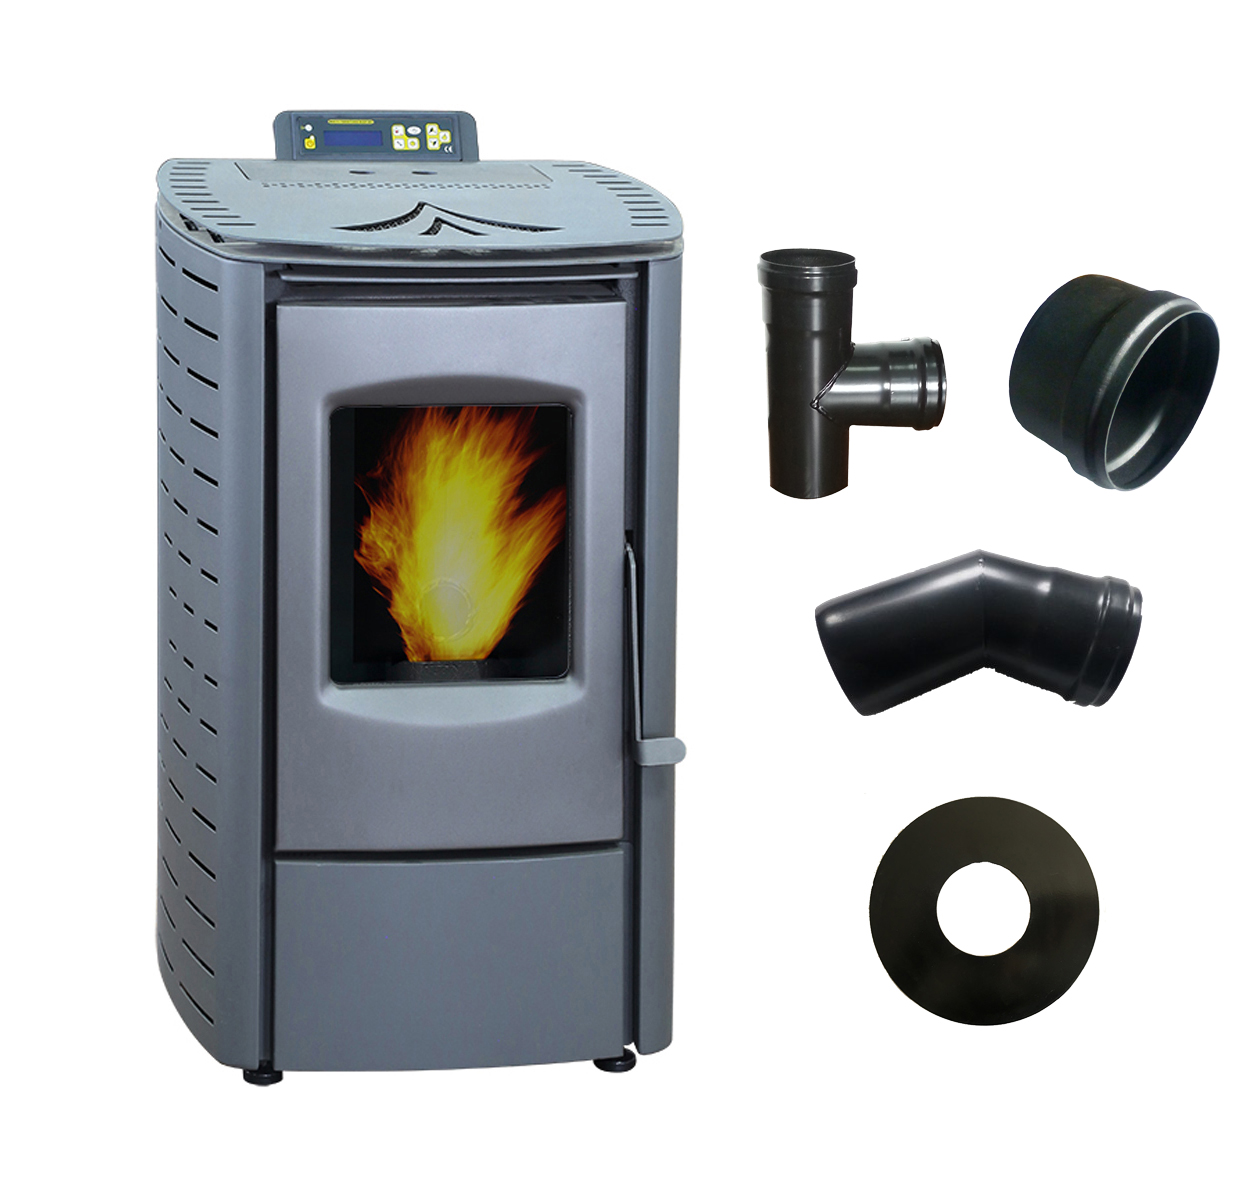 Pellet Stove with Stove Pipe,Wood Burning Stove for Home,TUV Certificated